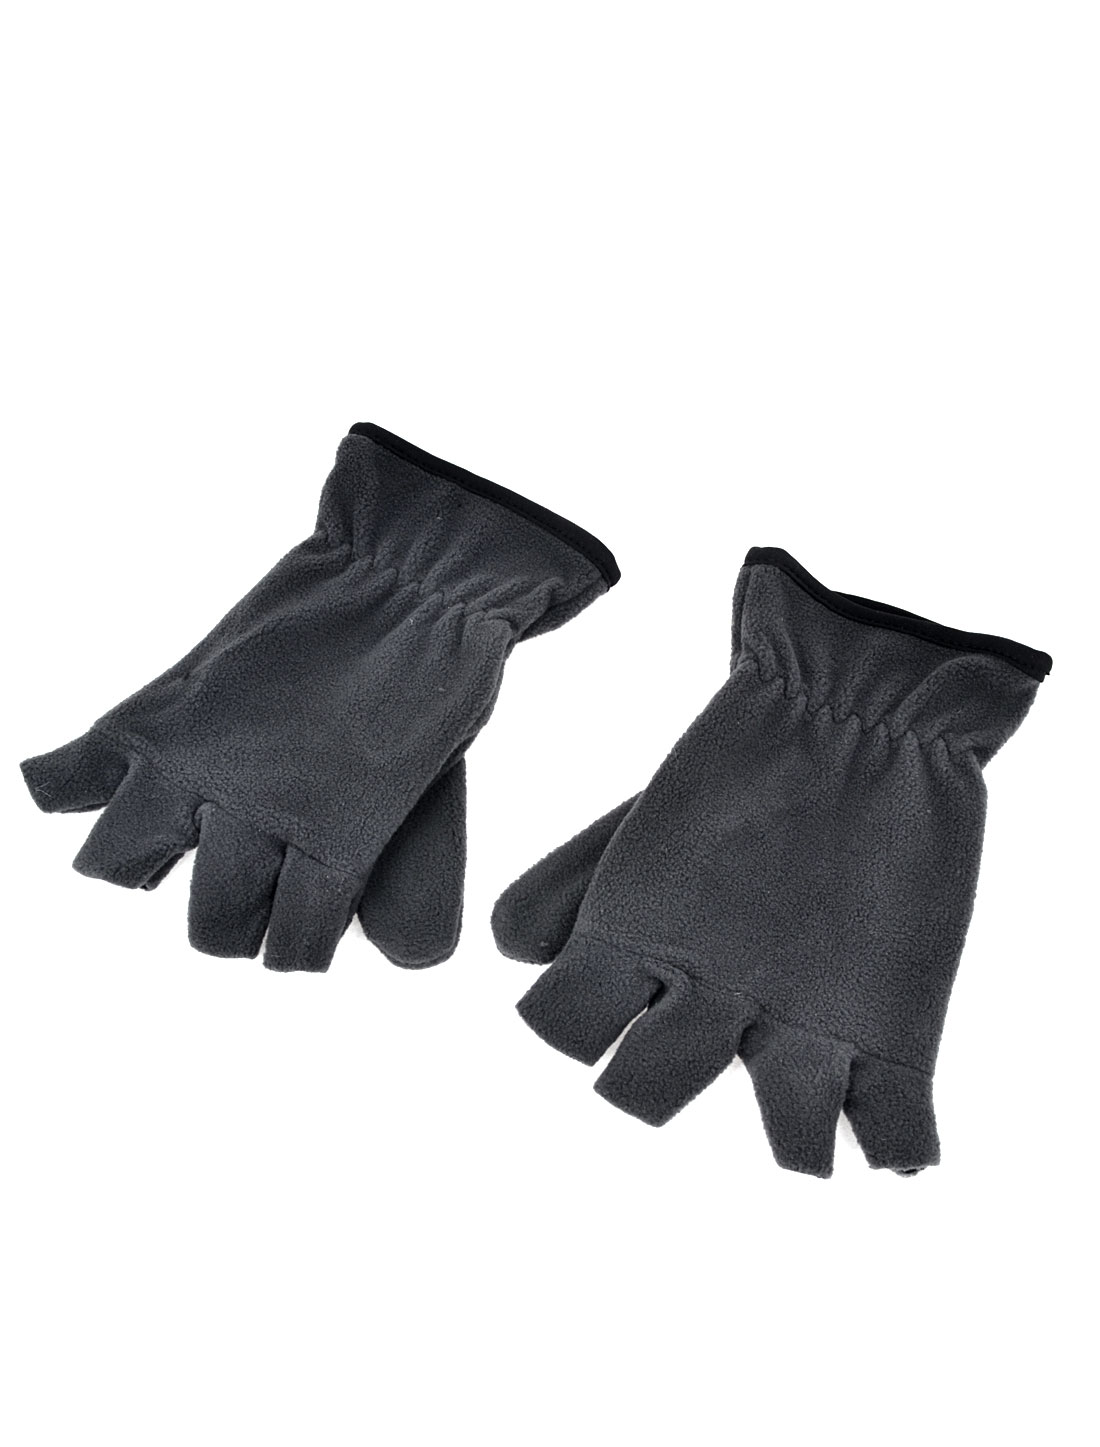 Unisex Sports Cycling Winter Warm Flannel Half Fingers Gloves Gray Pair